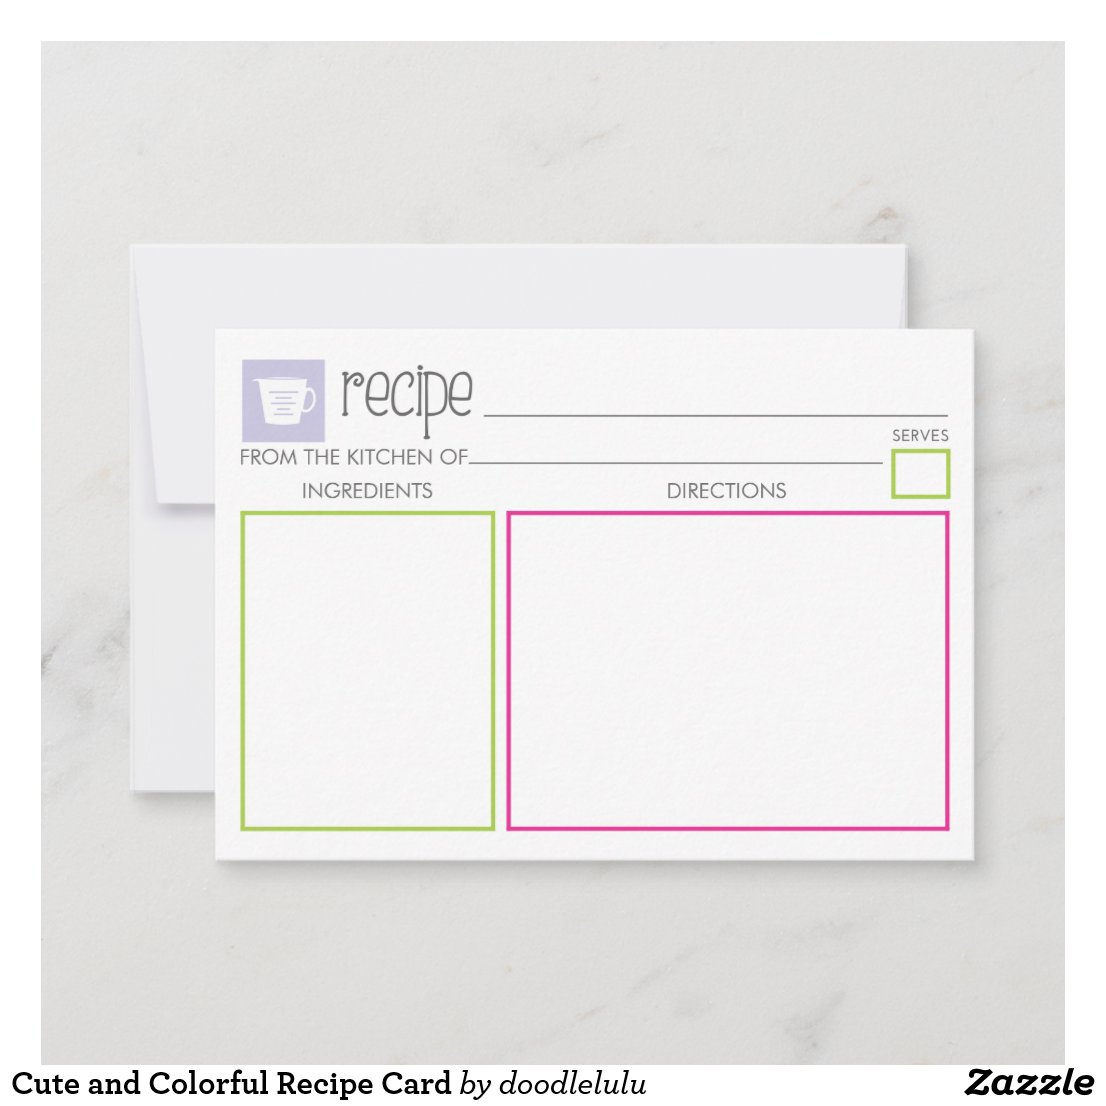 Cute and Colorful Recipe Card